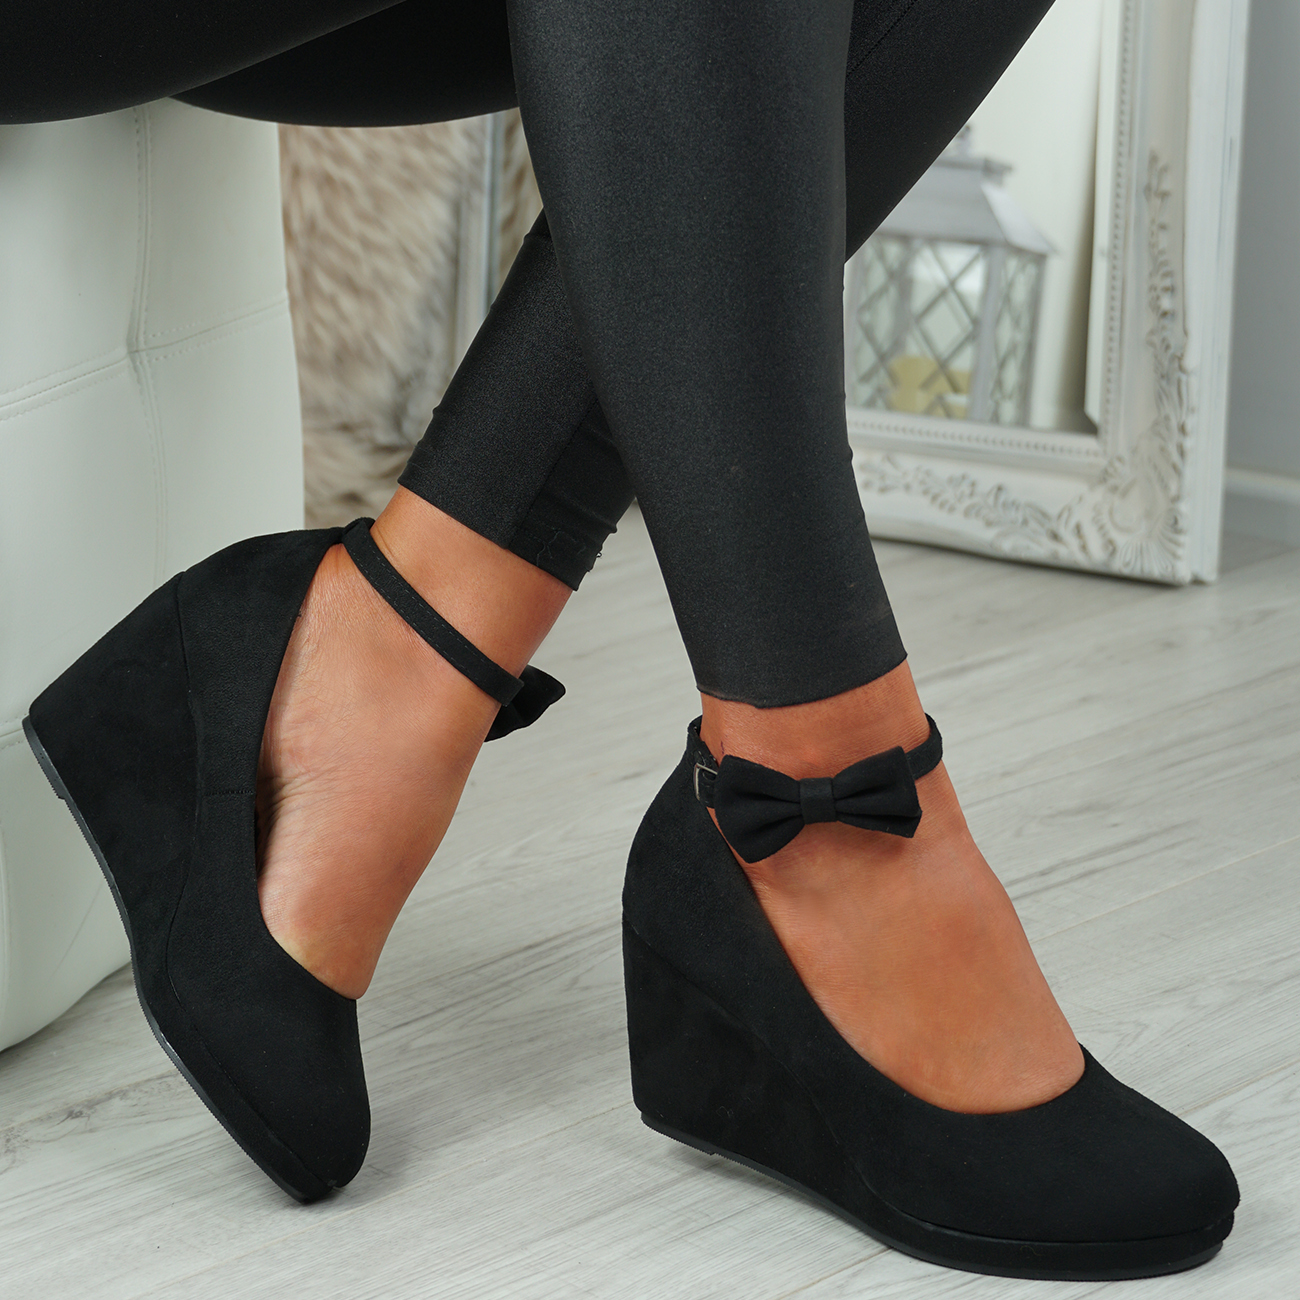 NEW-WOMENS-ANKLE-STRAP-WEDGES-LADIES-HIGH-HEEL-BOW-PUMPS-PLATFORM-SHOES thumbnail 9